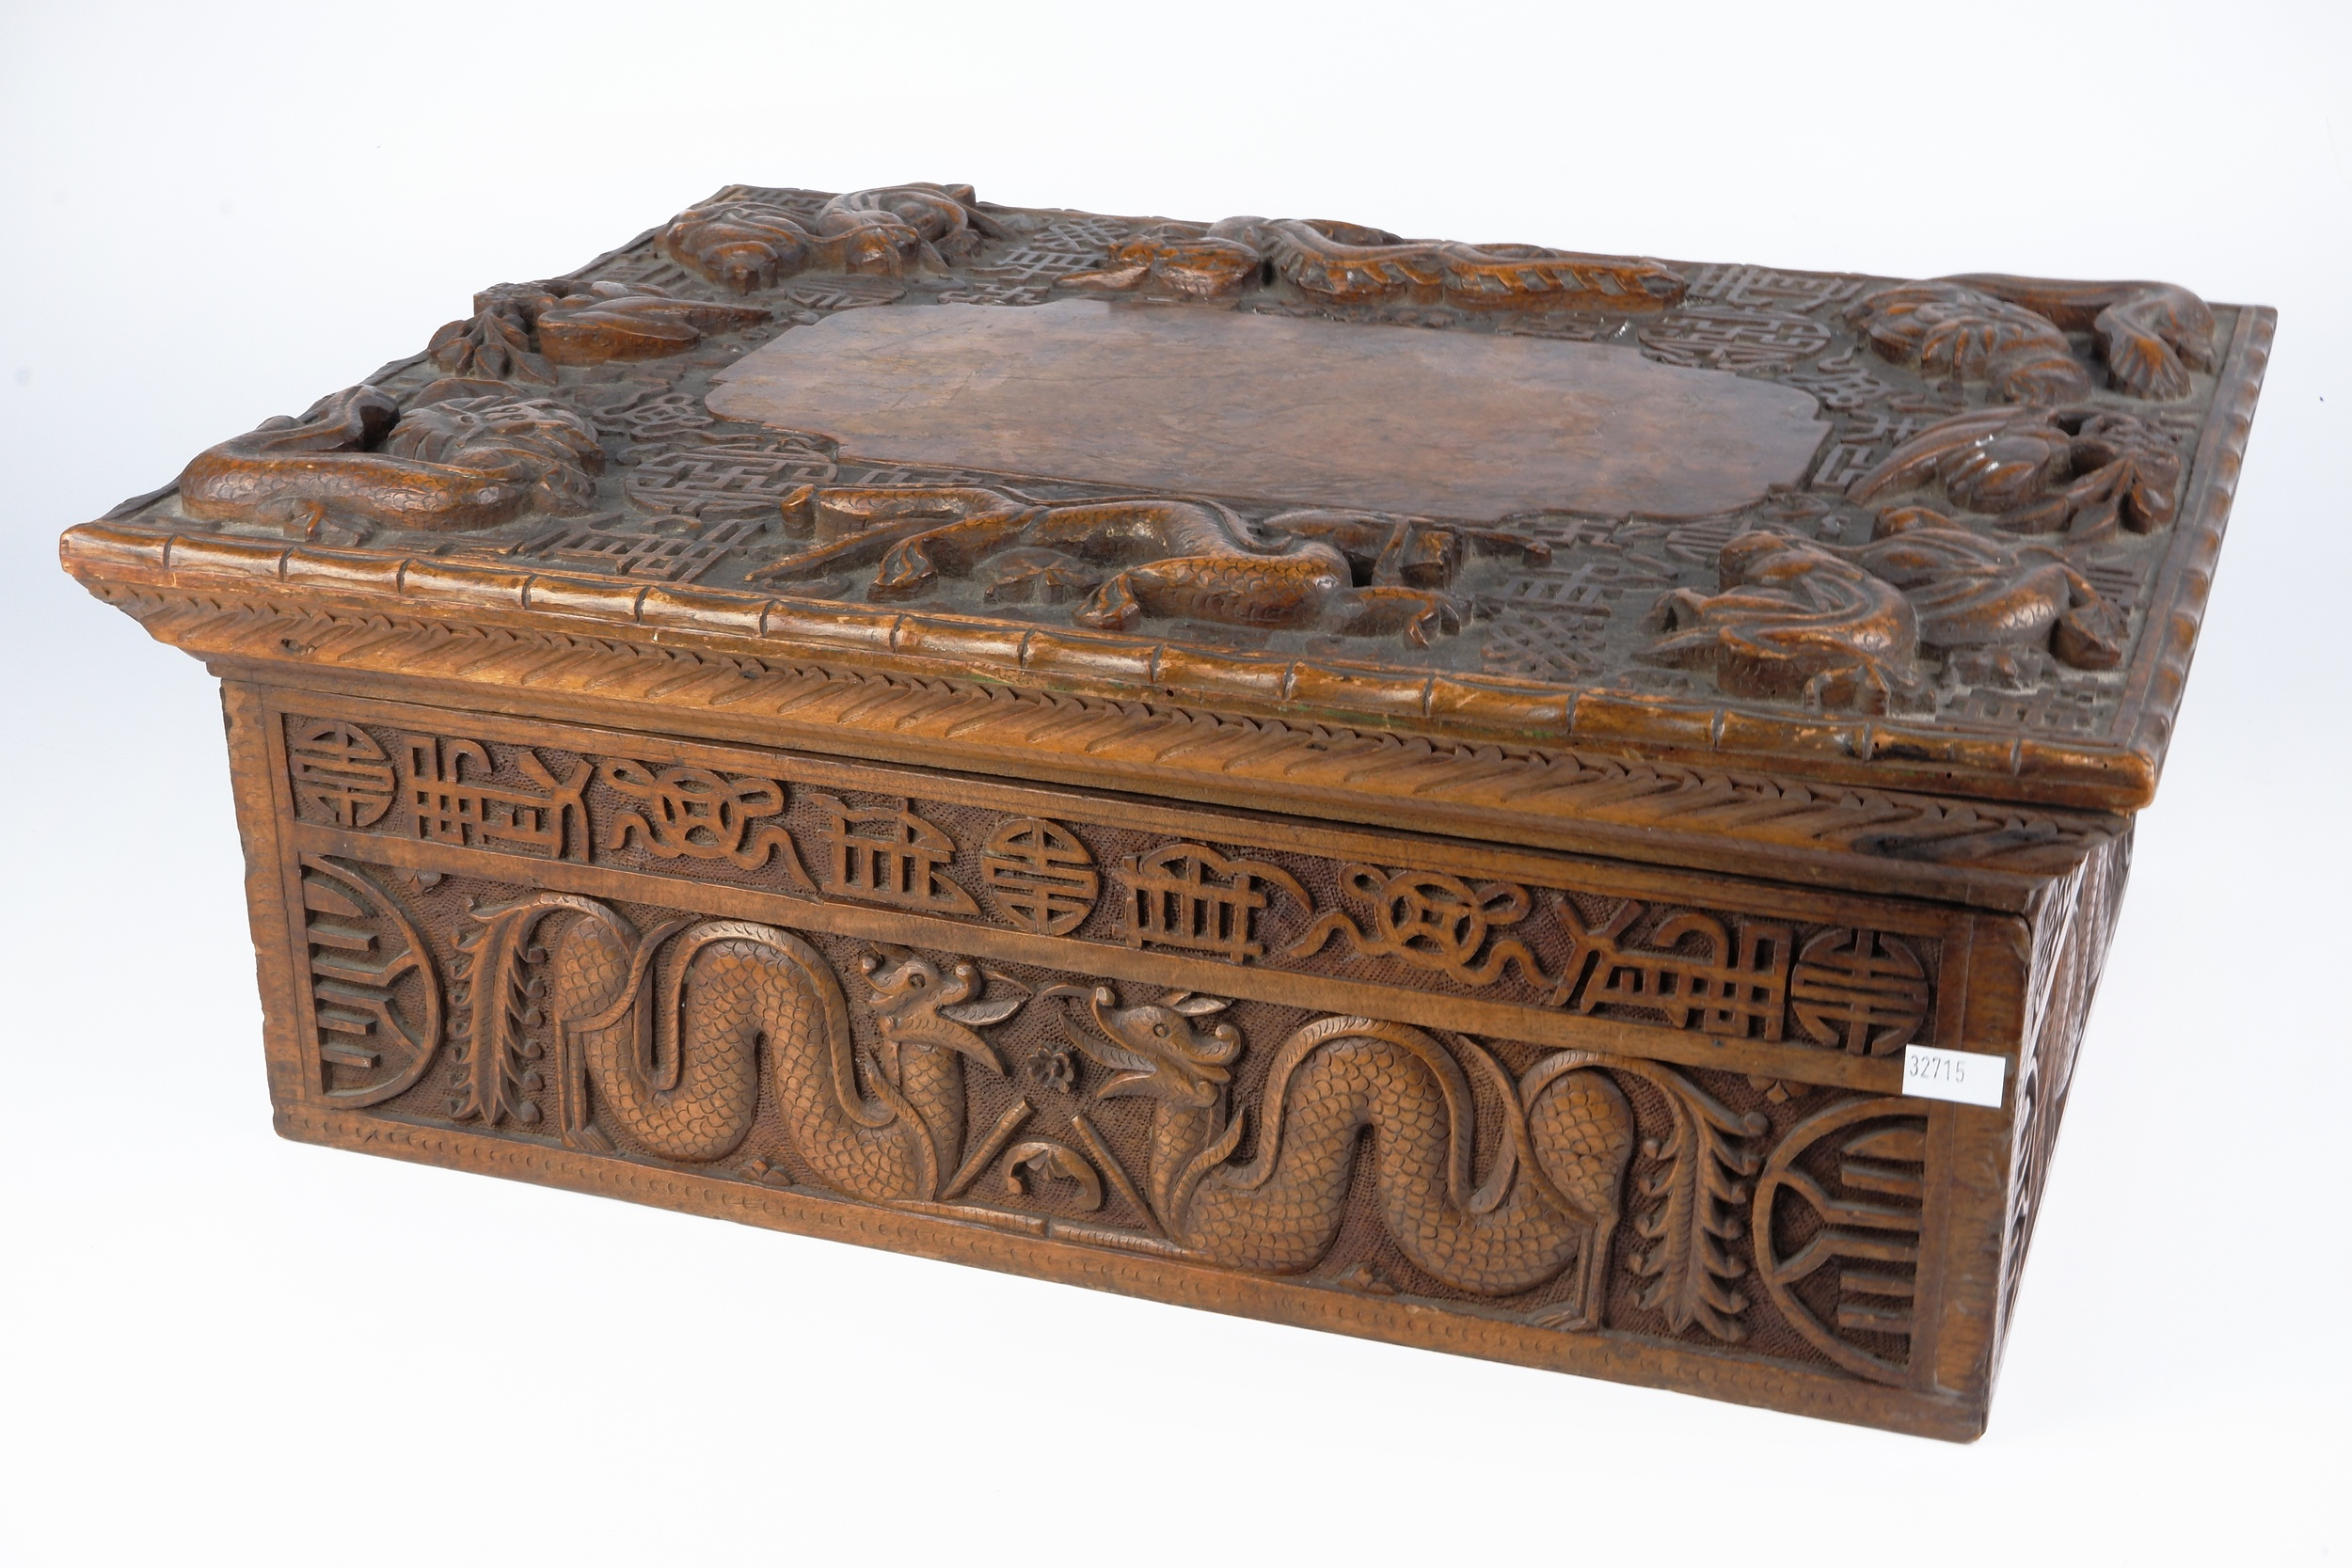 'South Chinese or Burmese Teak Writing Box Profusely Carved with Dragons and Auspicious Symbols, Circa 1900'